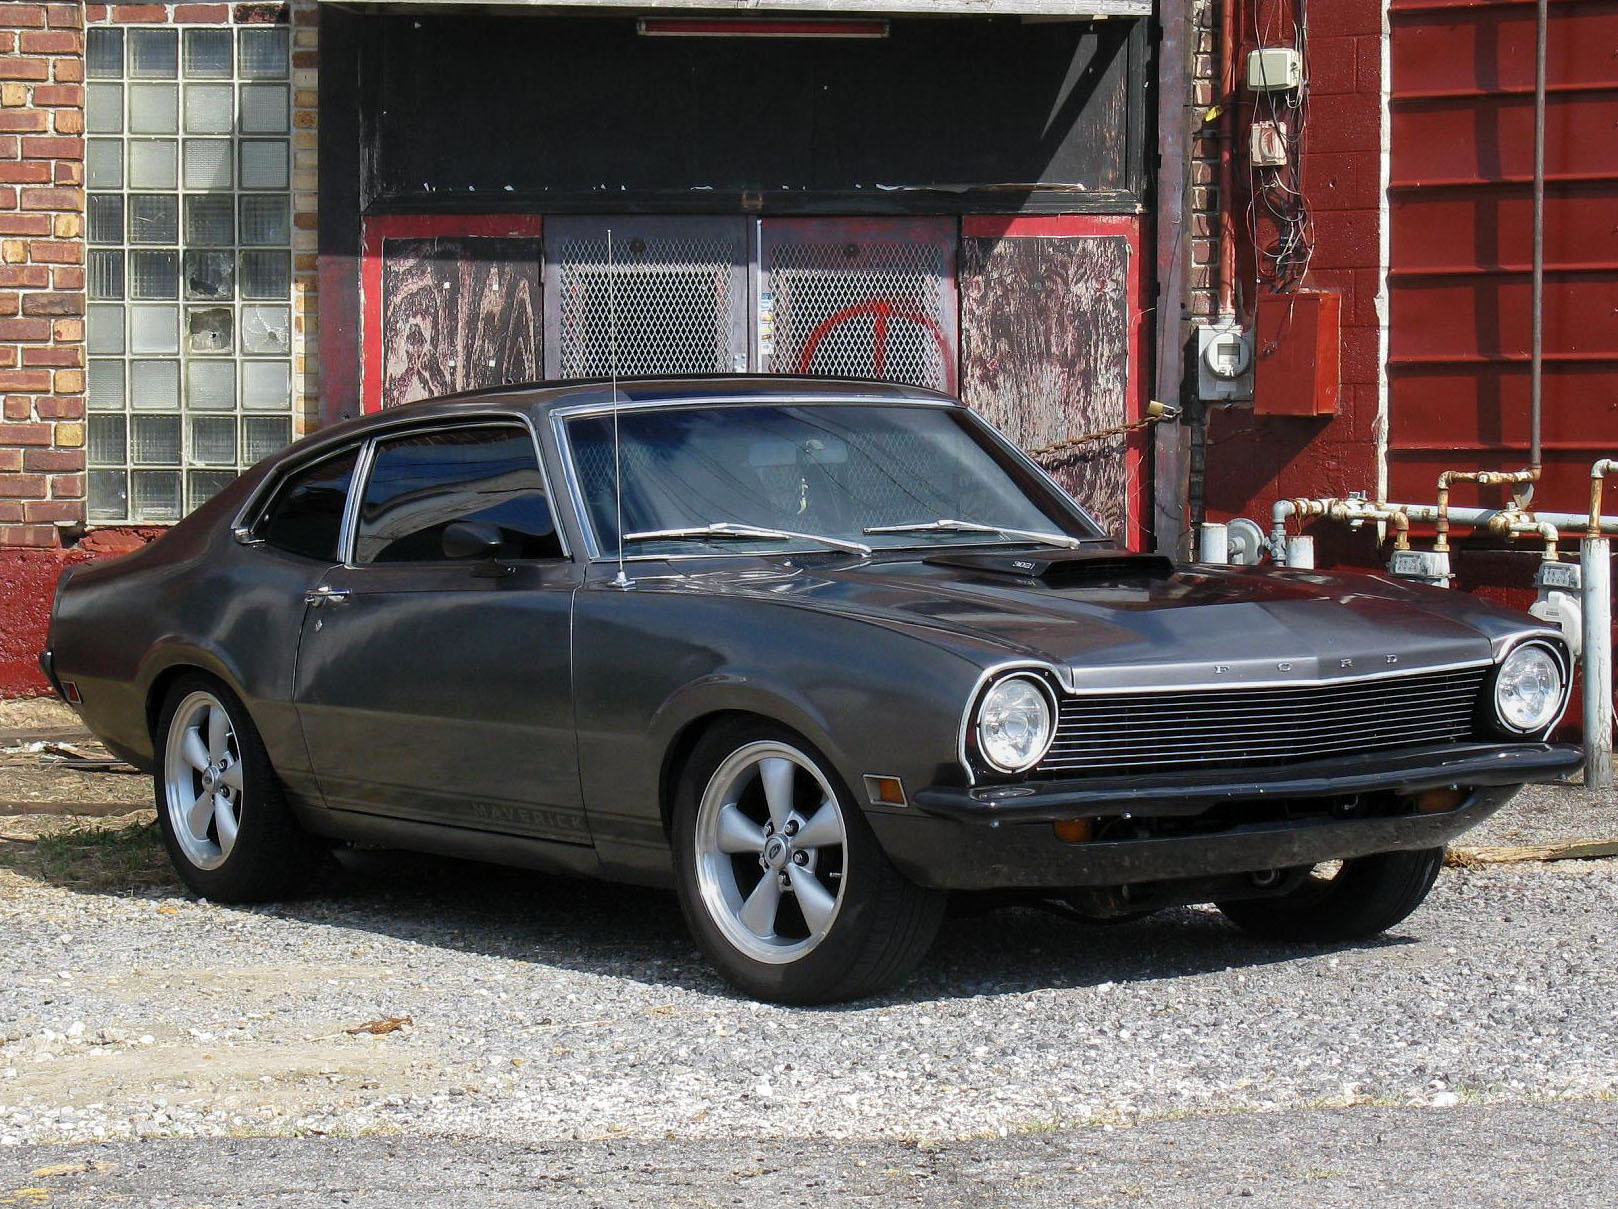 FORD MAVERICK muscle classic hot rod rods f wallpaper background